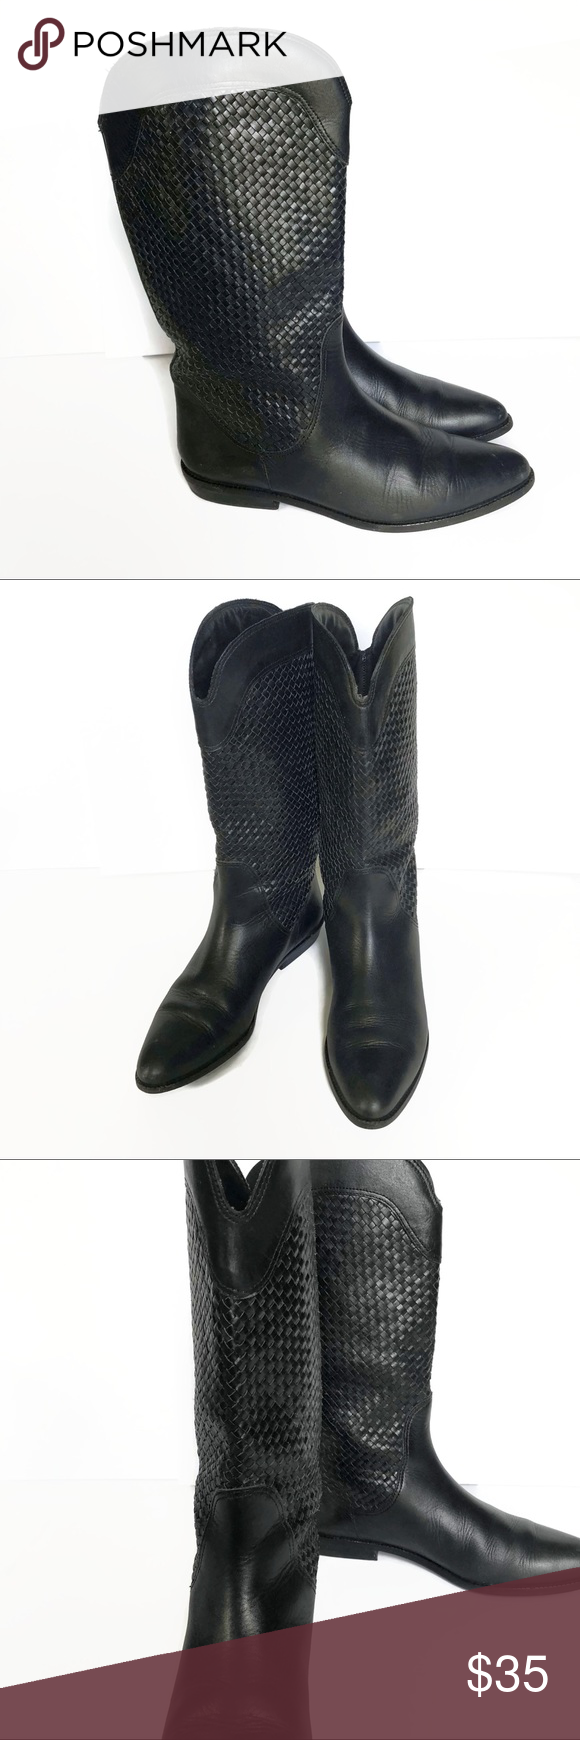 Vintage 80/'s Design Black Real Leather Boots with Gray Zig Zag Design